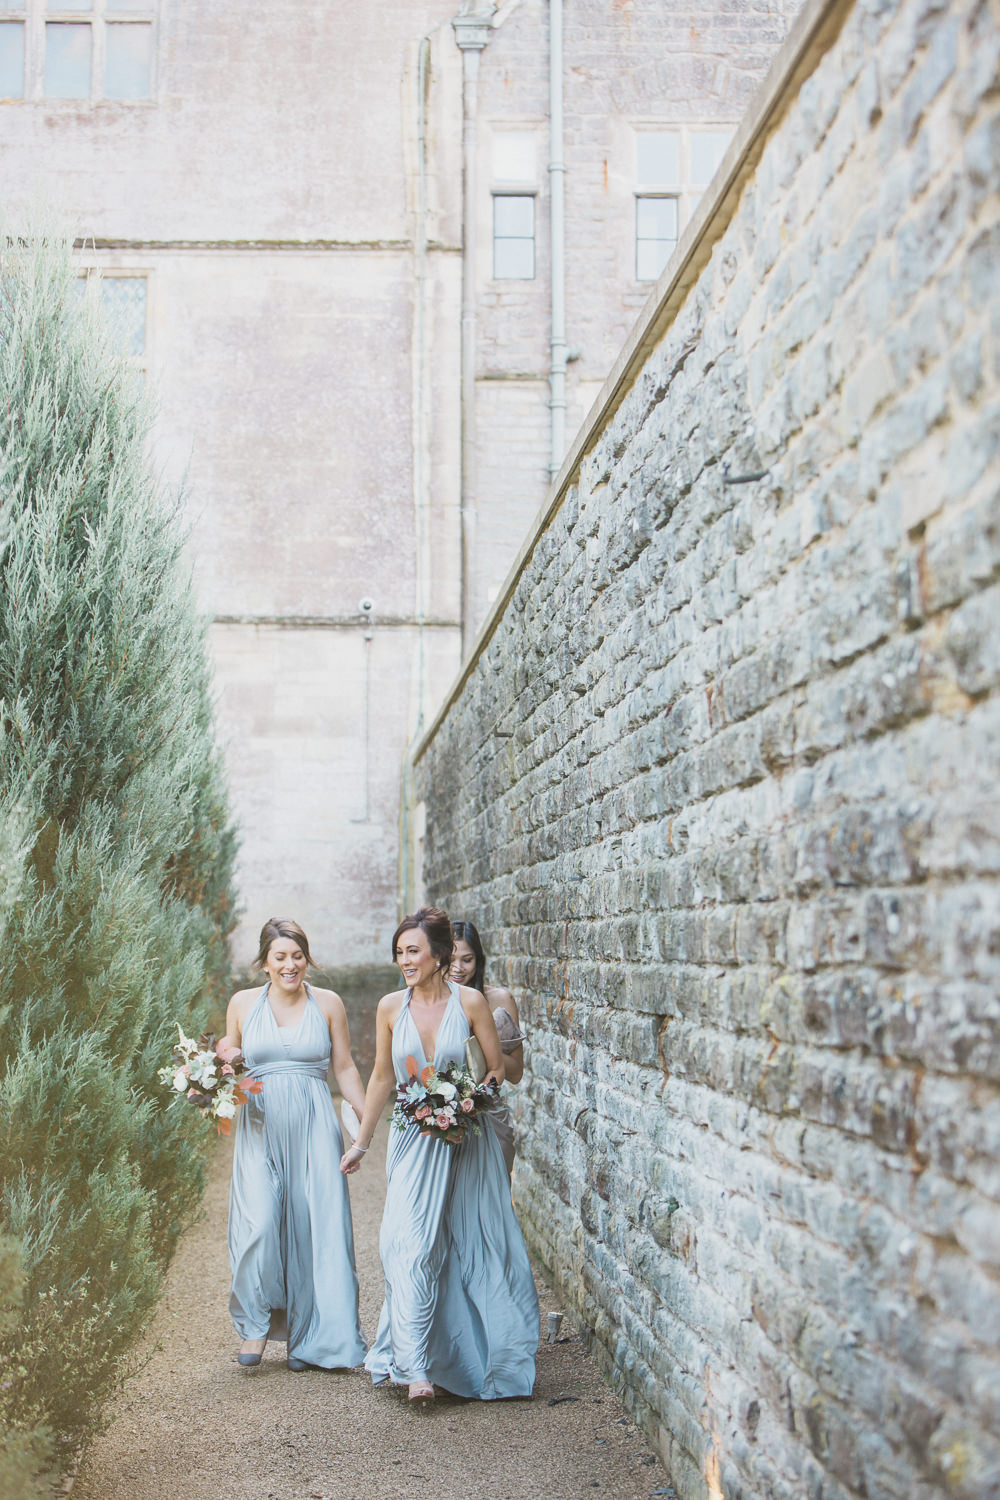 Bridesmaids Bridesmaid Dress Dresses Silver Taupe Modern Romantic Wedding Red Maple Photography